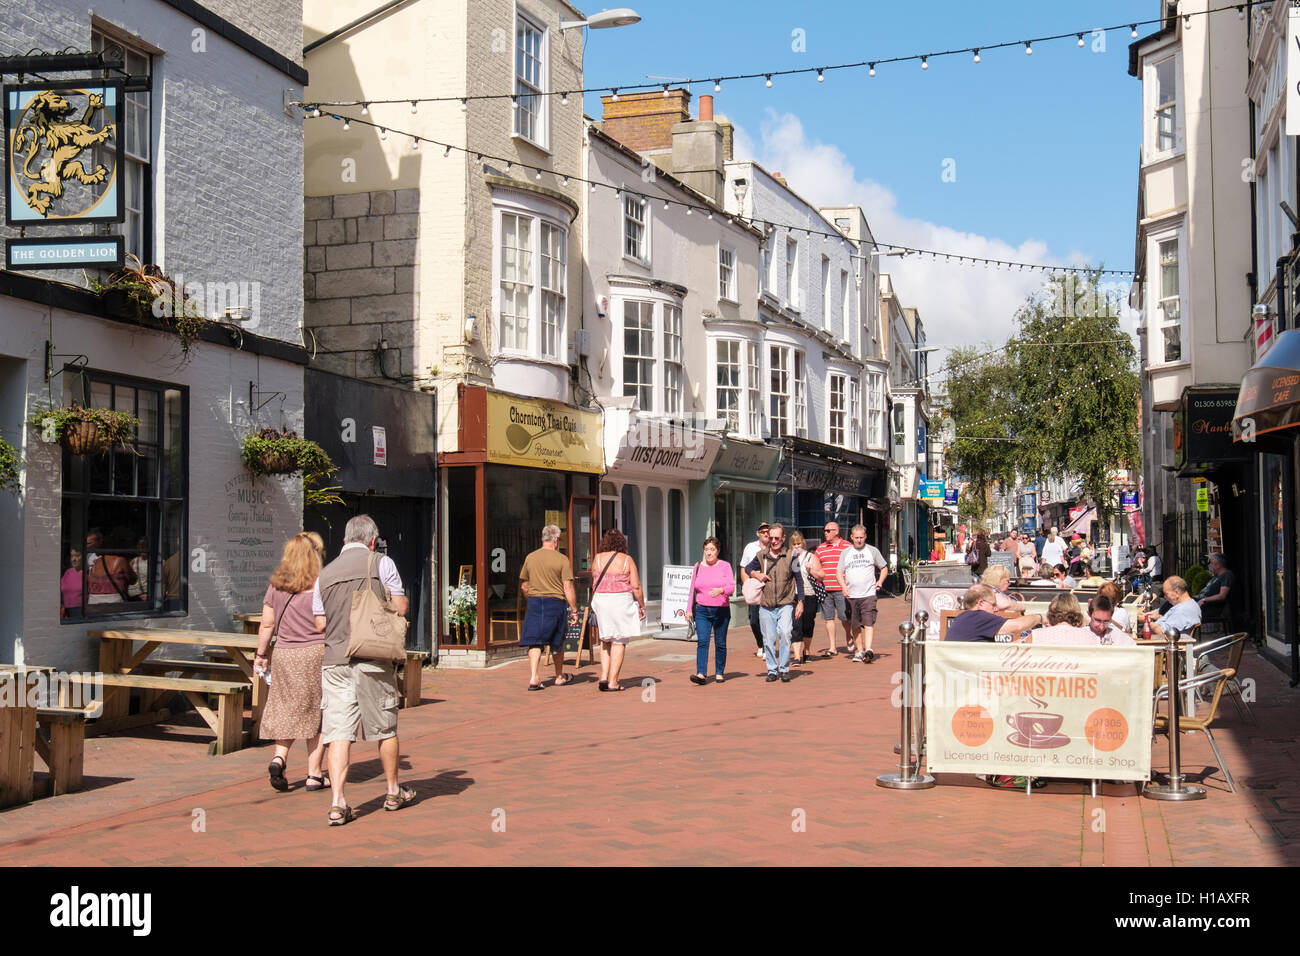 Busy street scene on pedestrian shopping precinct in town centre. St Mary Road, Melcombe Regis, Weymouth, Dorset, - Stock Image